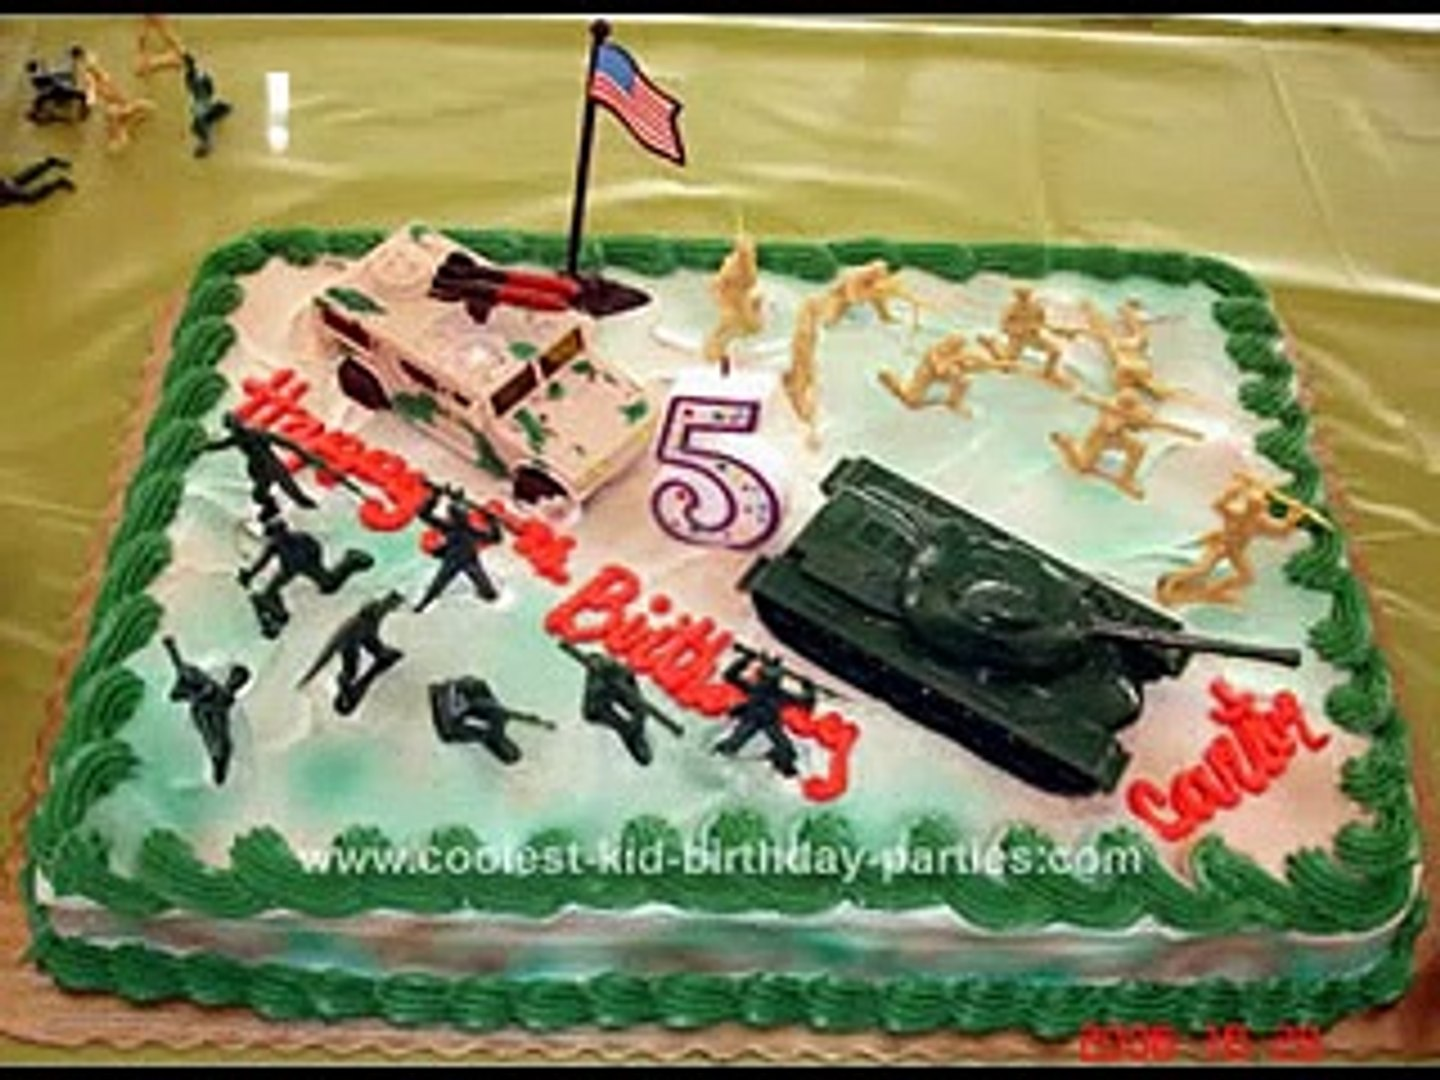 Groovy Creative Army Cake Design Decorating Ideas Video Dailymotion Personalised Birthday Cards Arneslily Jamesorg